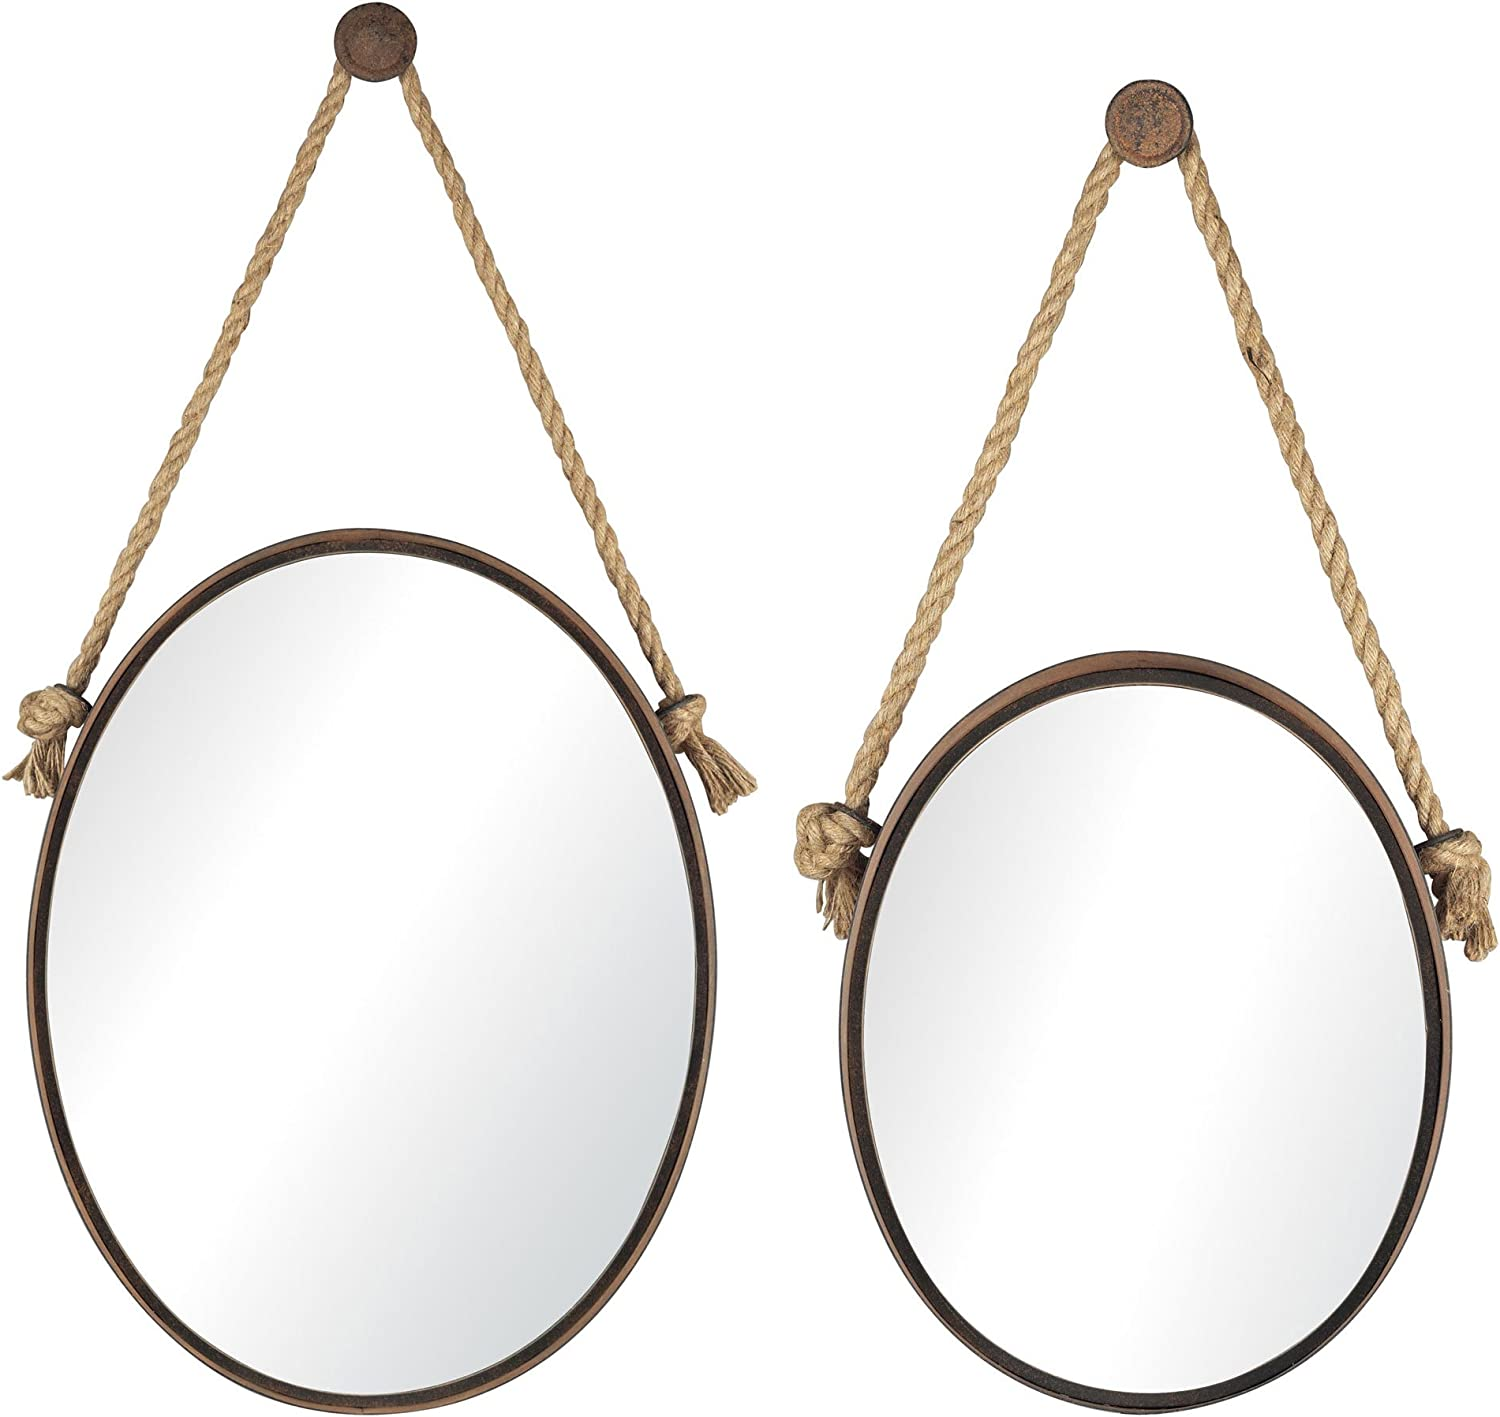 Set of 2 Rust Oval Sterling 53-8503 Iron Holder Mirrors on Rope